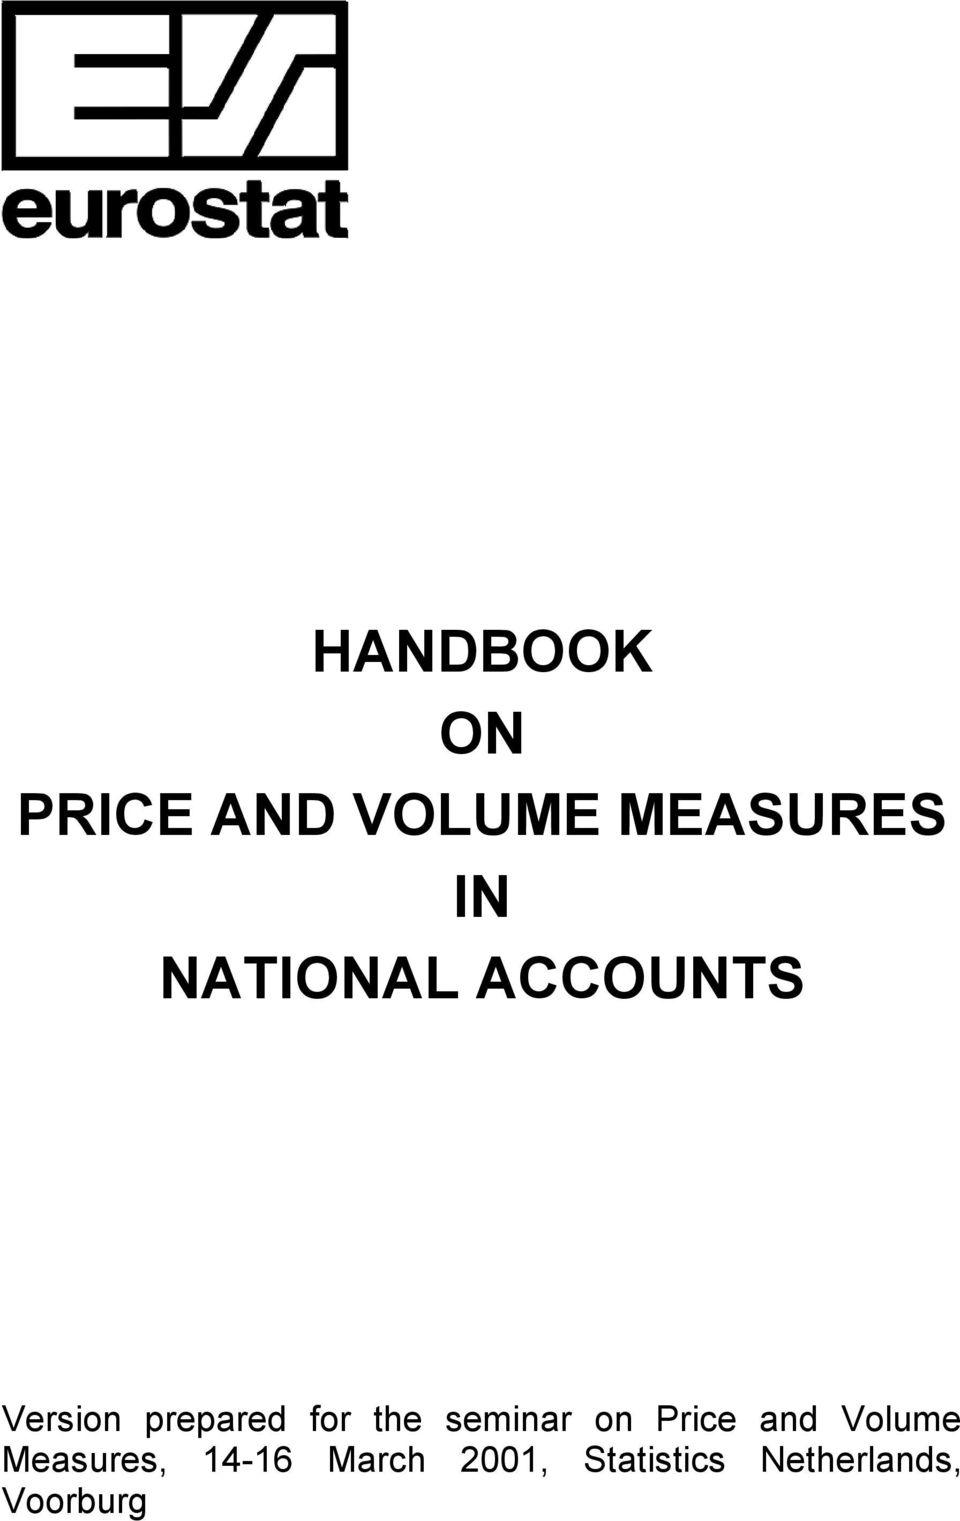 seminar on Price and Volume Measures,